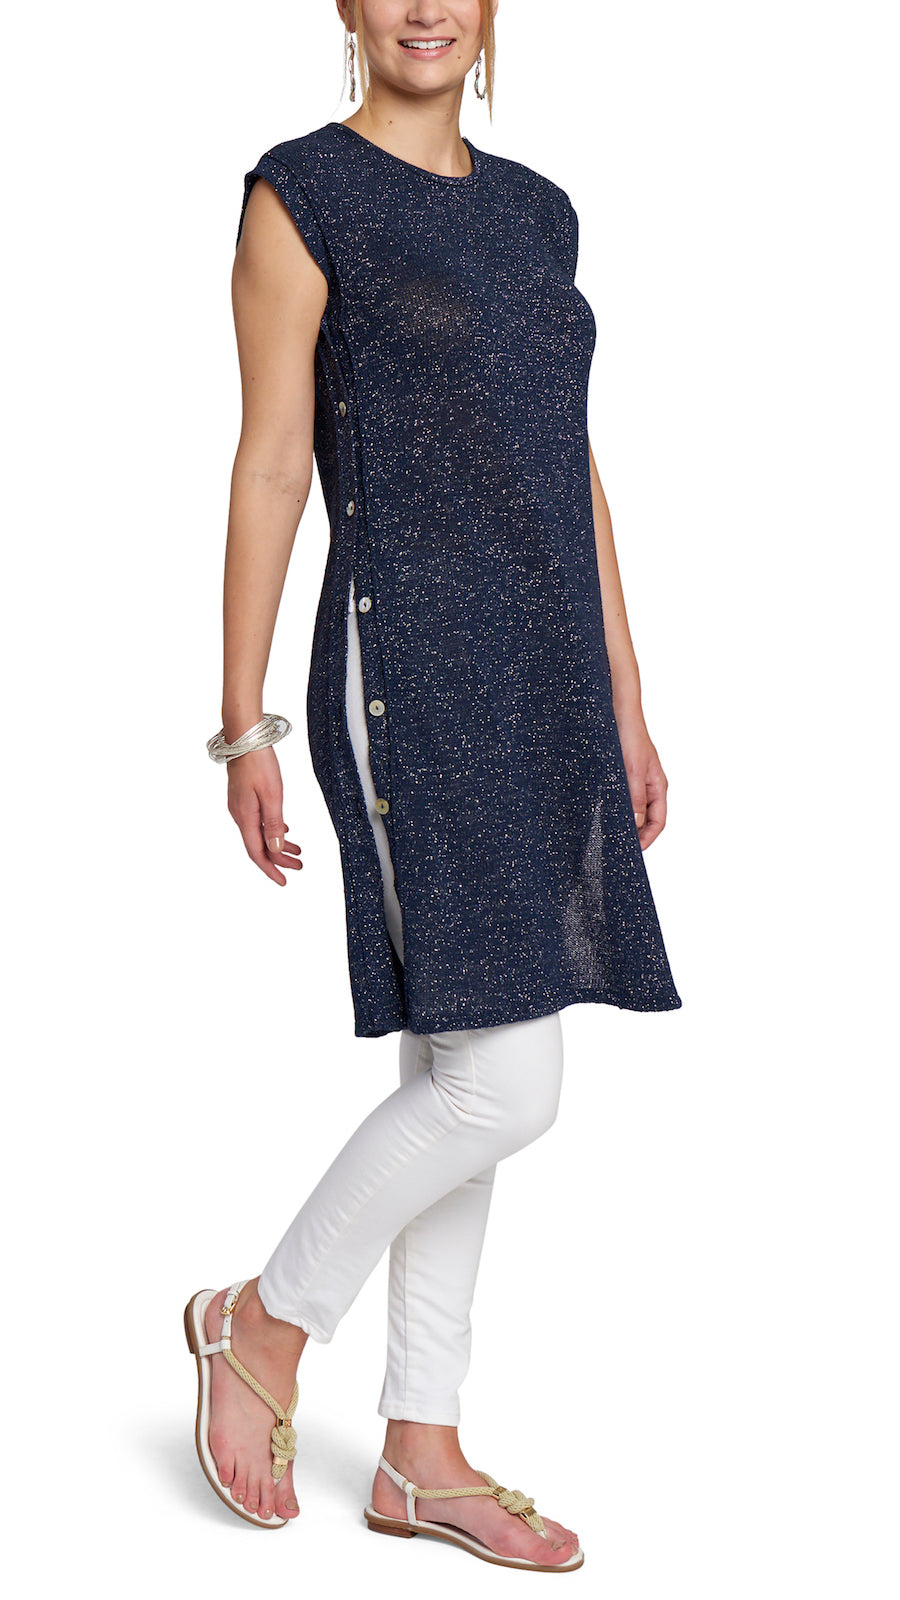 CONTEMPO Hailey Shimmery Knitted Tunic-Dress, Navy